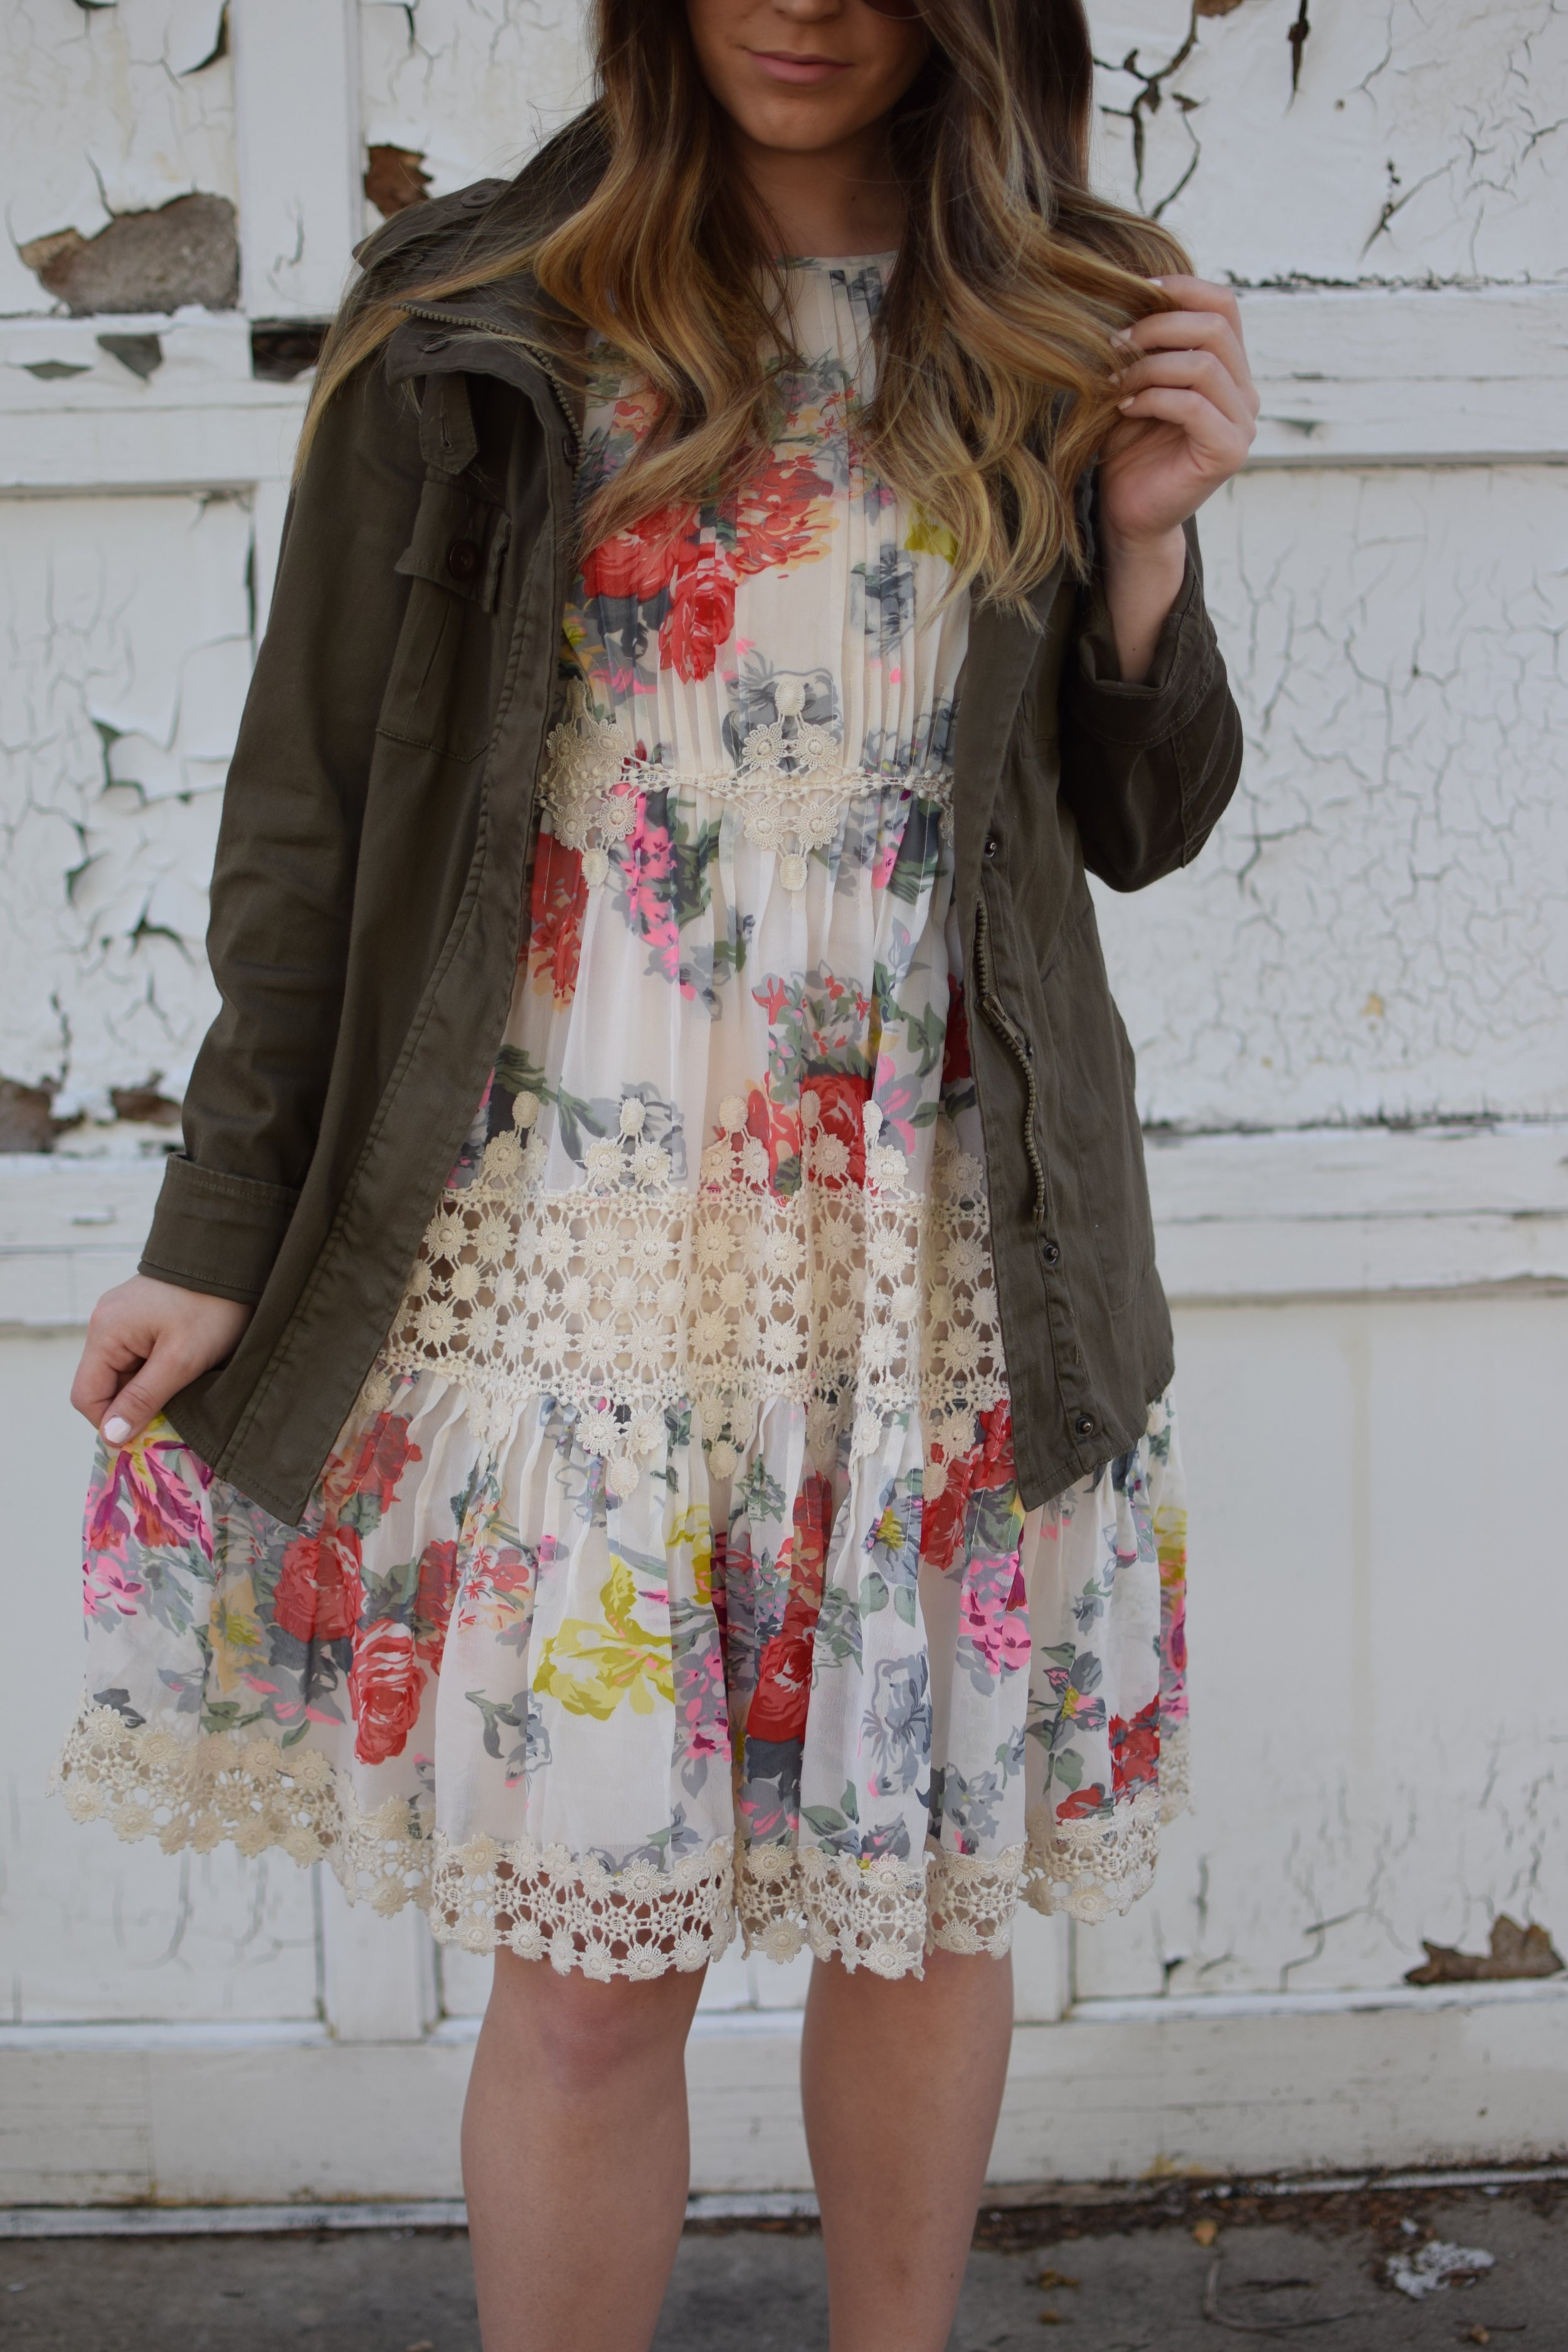 anthropology floral & lace dress / spring & summer outfit idea / utility jacket